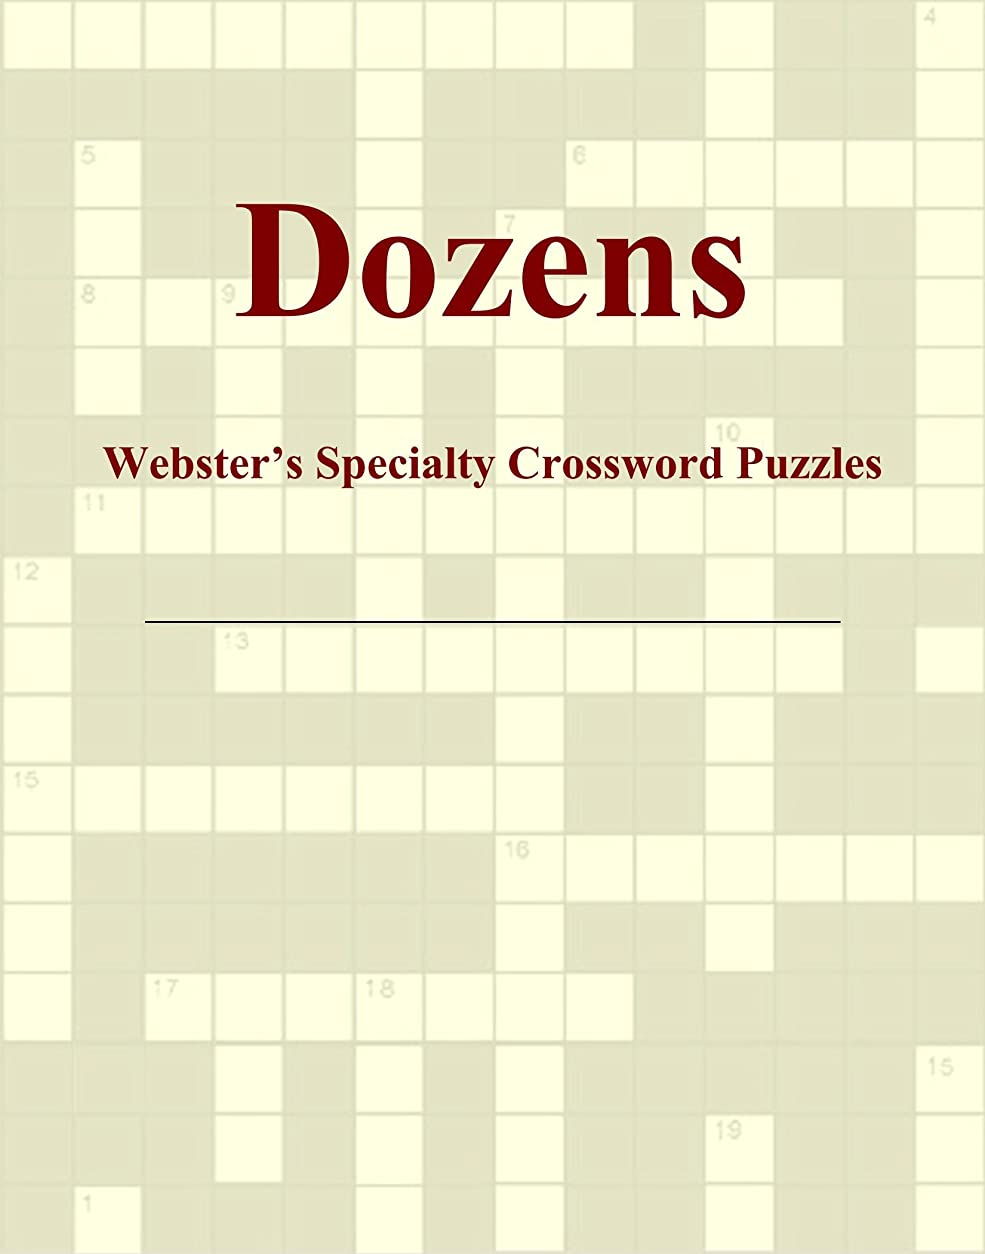 溶岩いらいらさせるホバーDozens - Webster's Specialty Crossword Puzzles